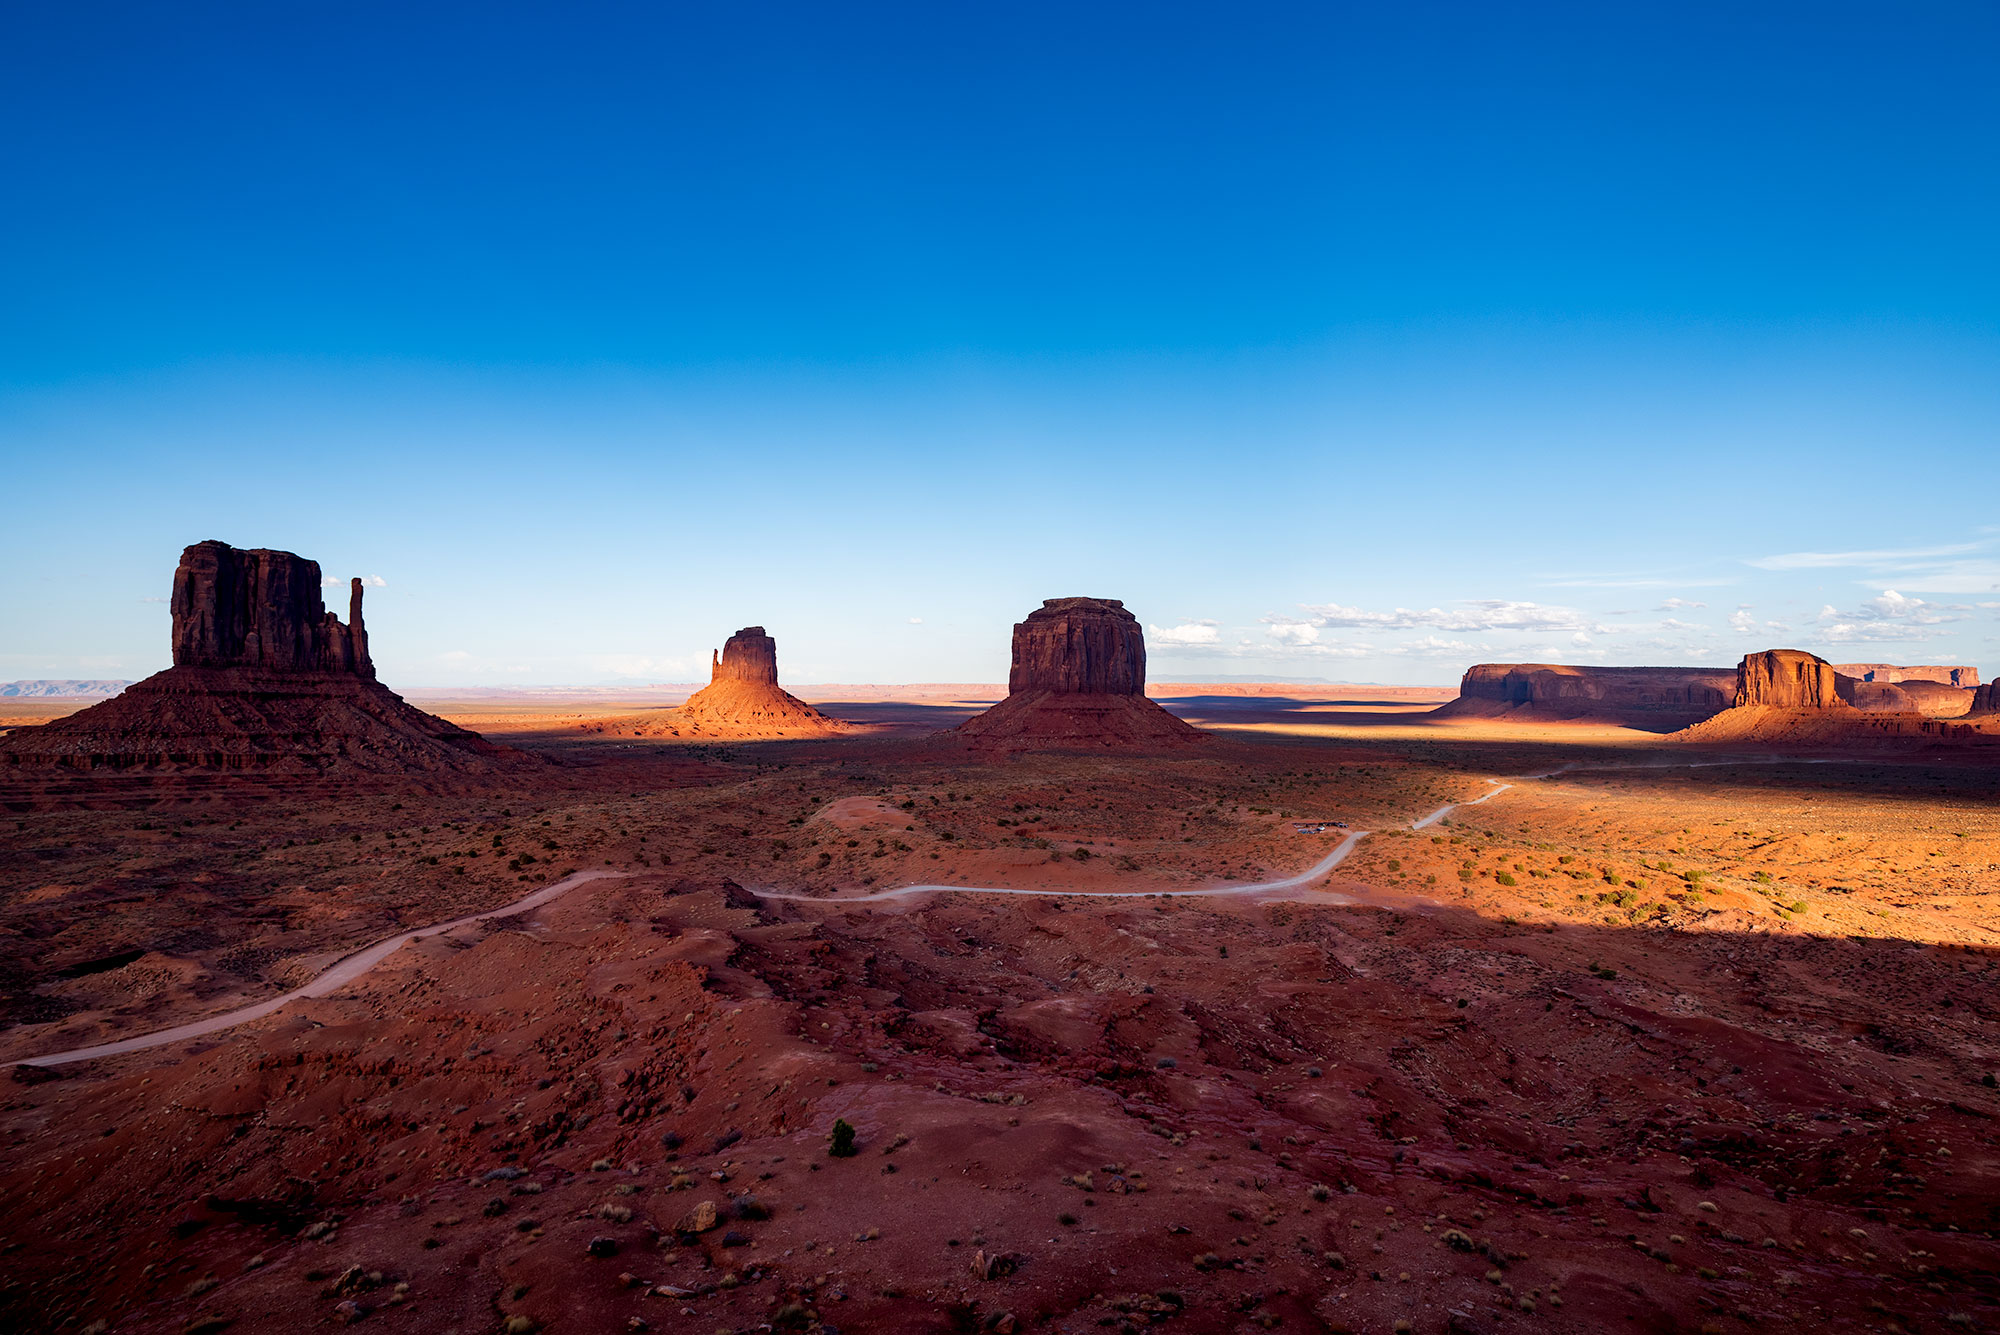 Panorama of Monument Valley at sunset. Image by Jennifer Esseiva.